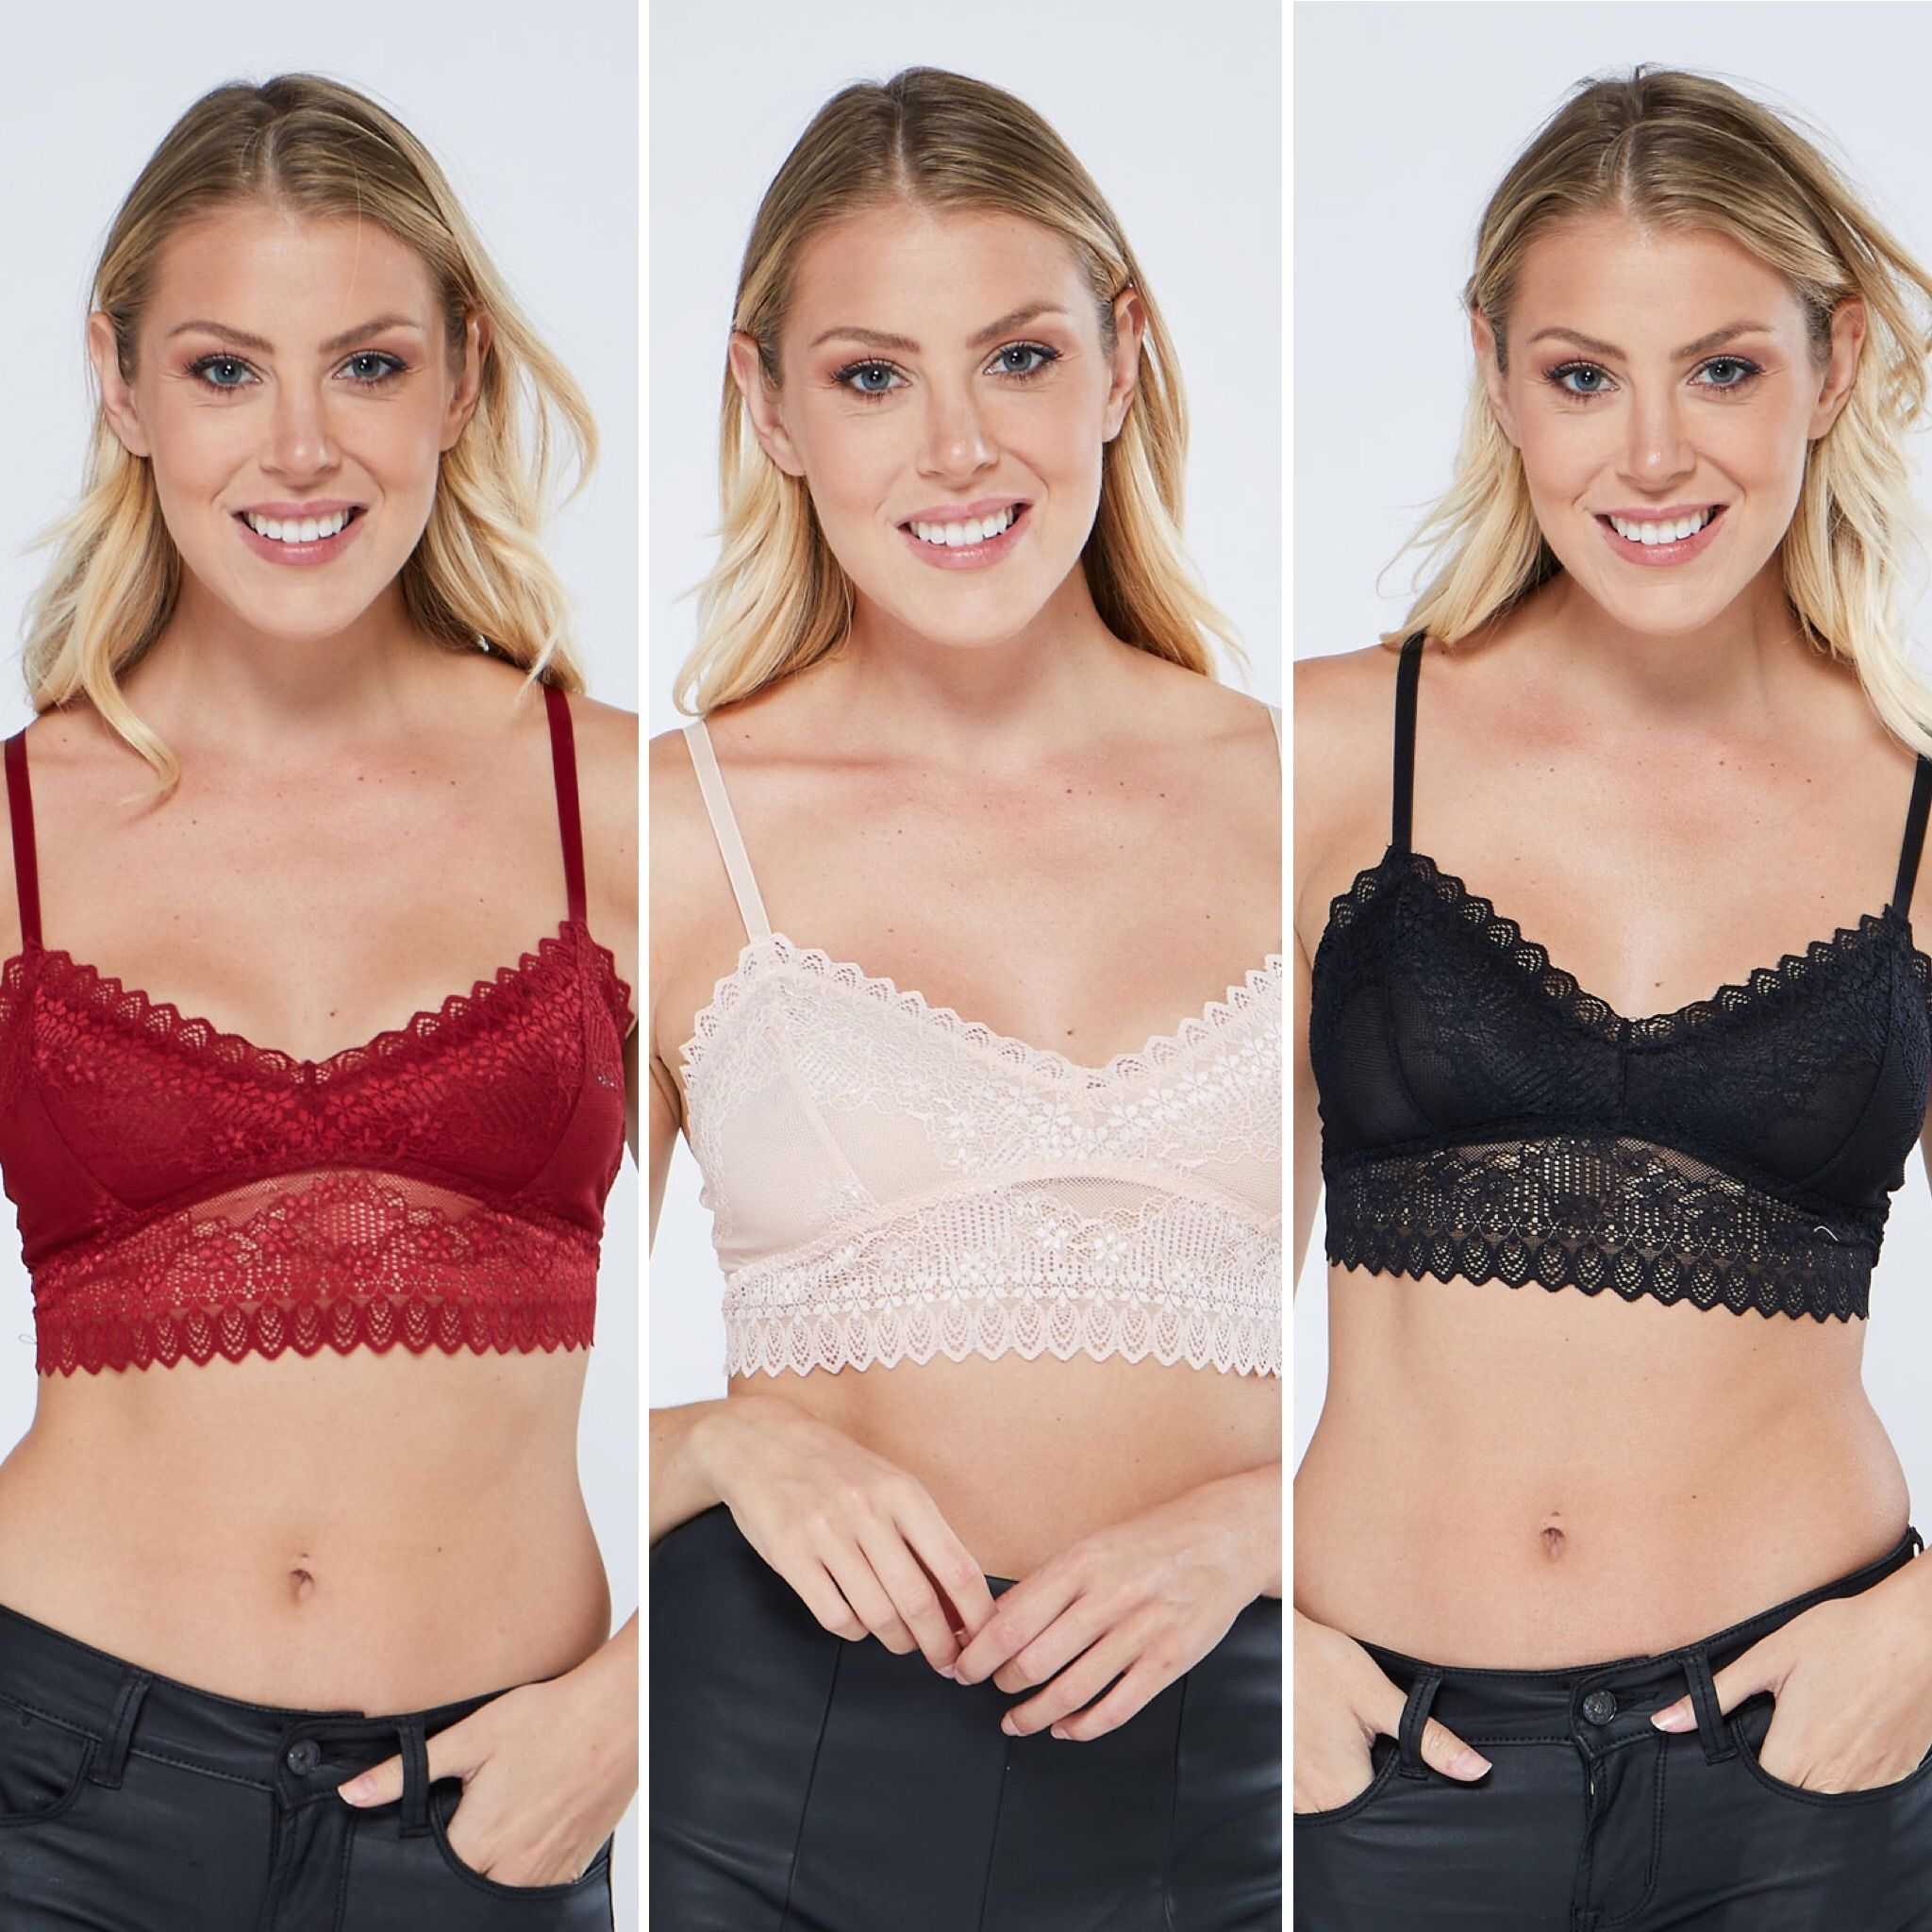 d6e2ef46c8122 Which color would you pick for your best bralette  ♕ Shop your inside out  at edgelook.com